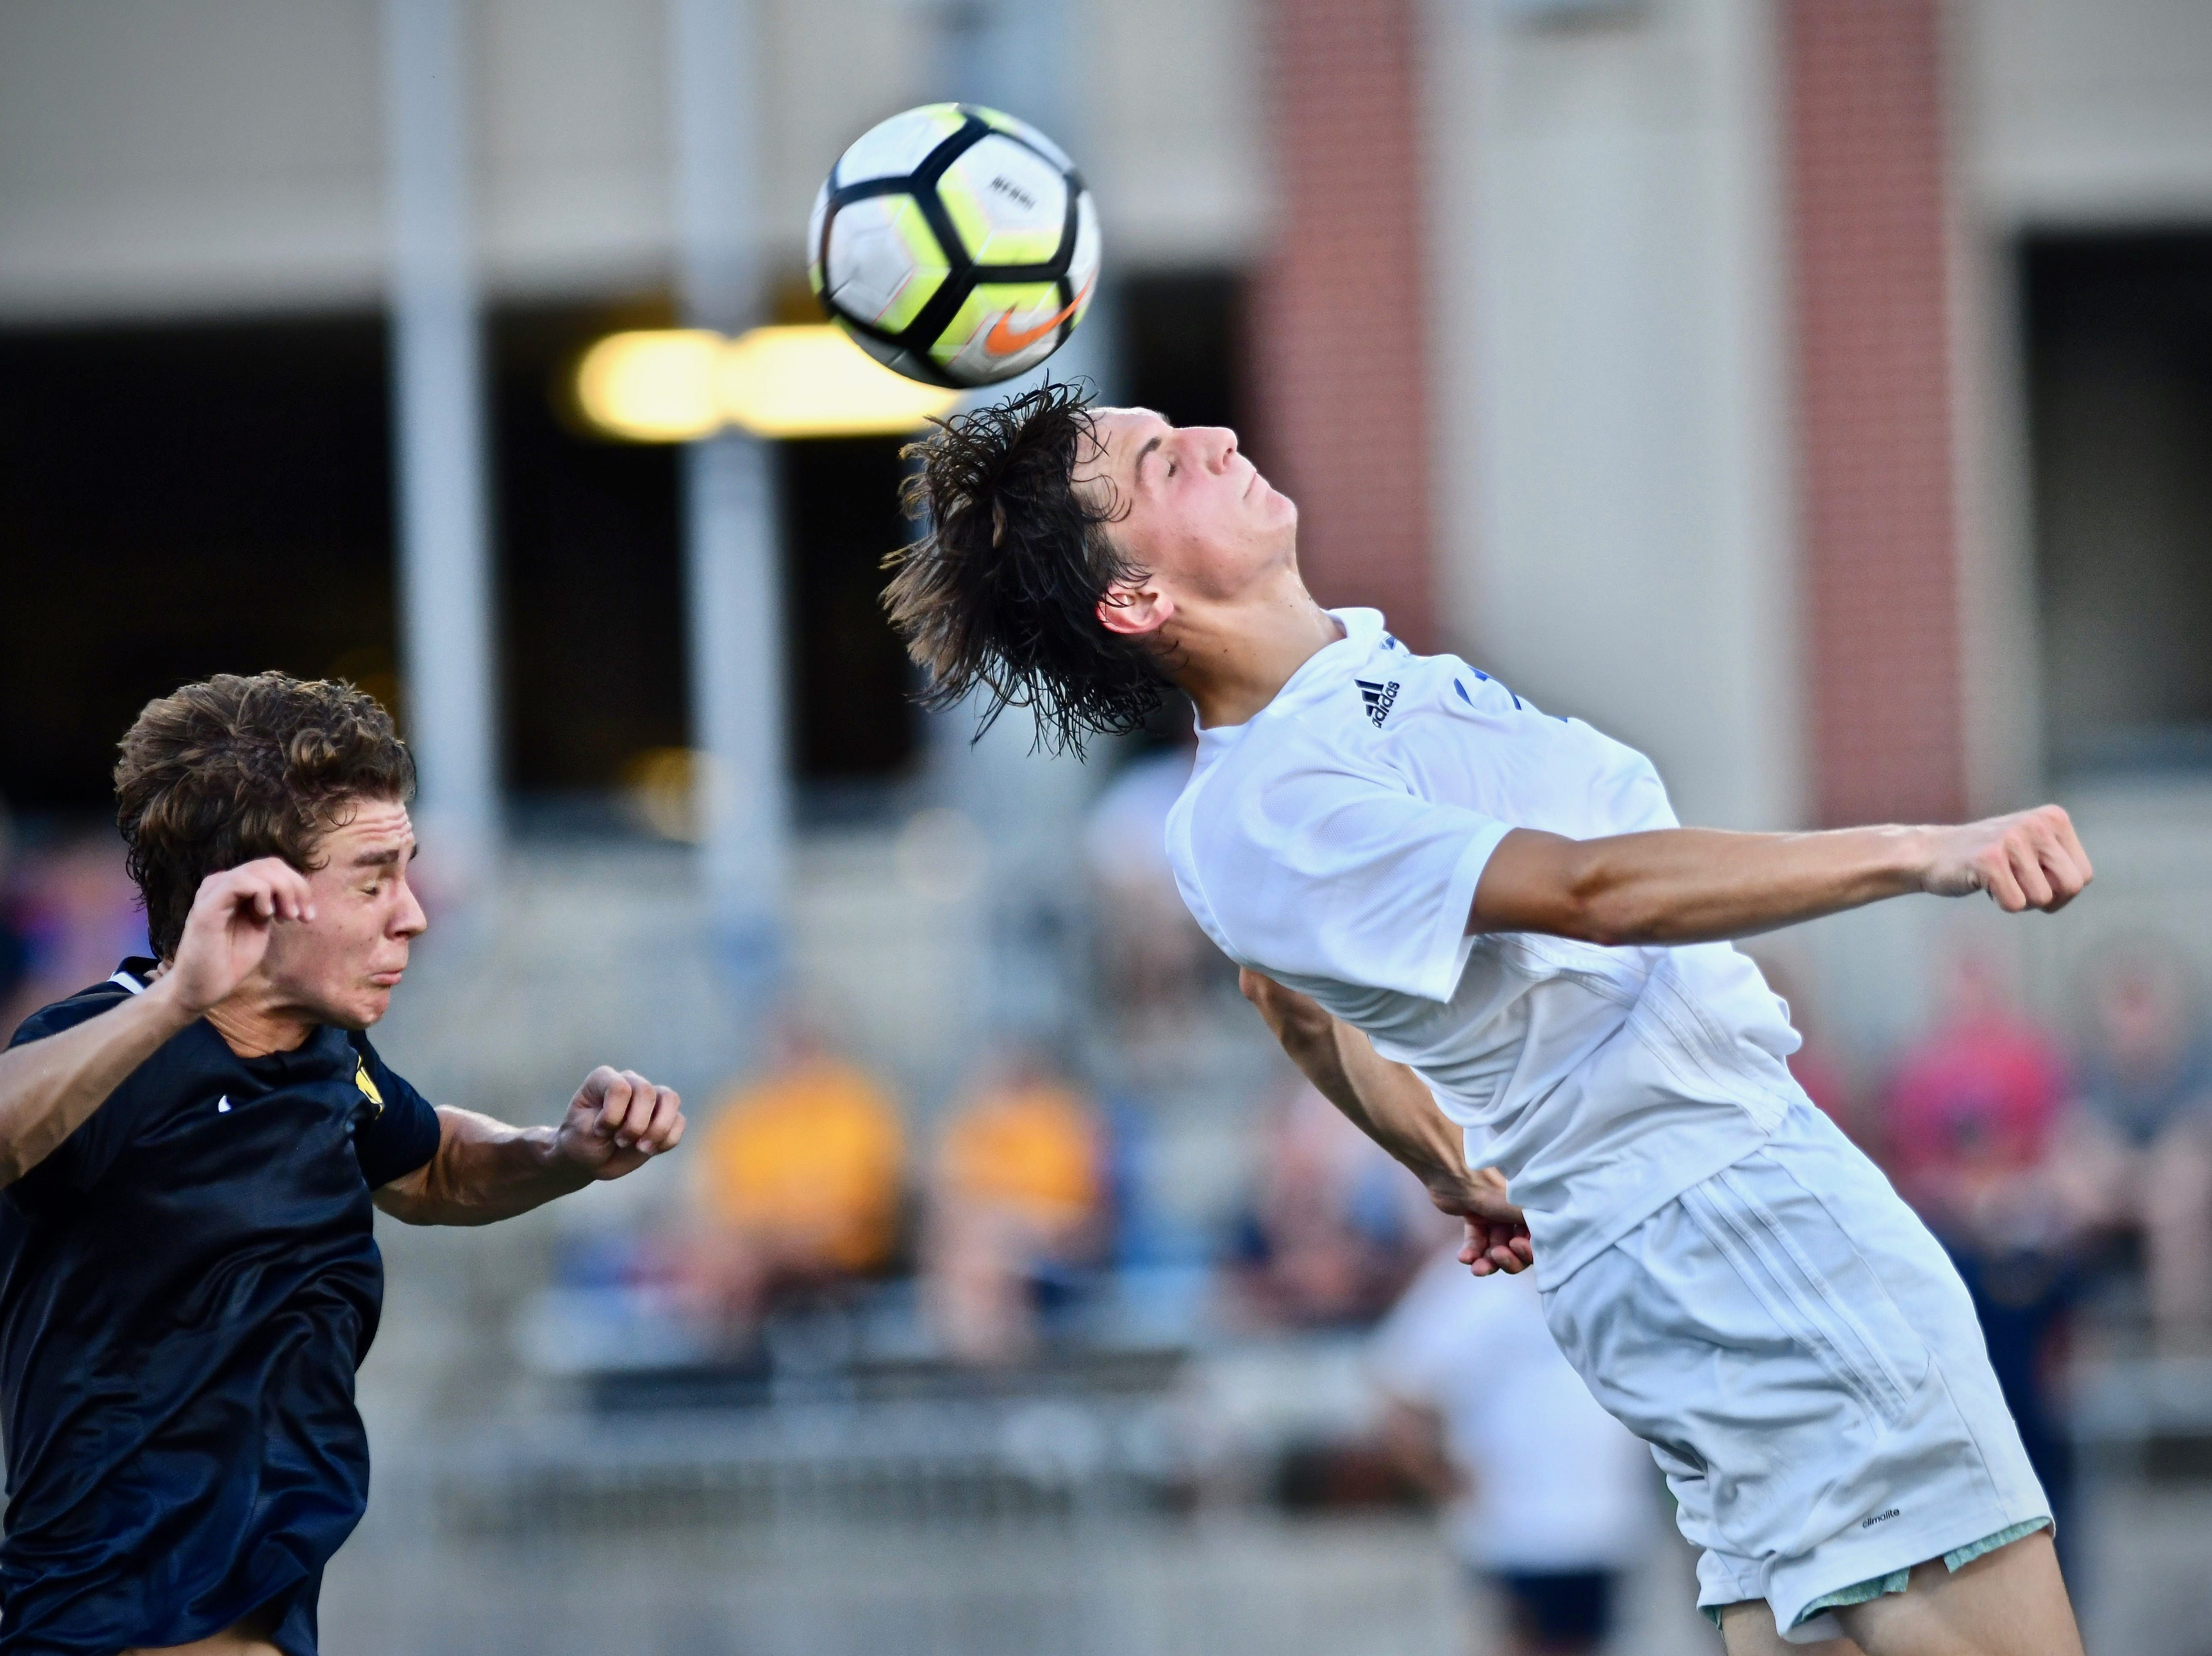 St. Xavier's Gino Geiser battles for a ball at midfield against Moeller Tuesday, Sept. 4, 2018 at Gettler Stadium on the campus of the University of Cincinnati